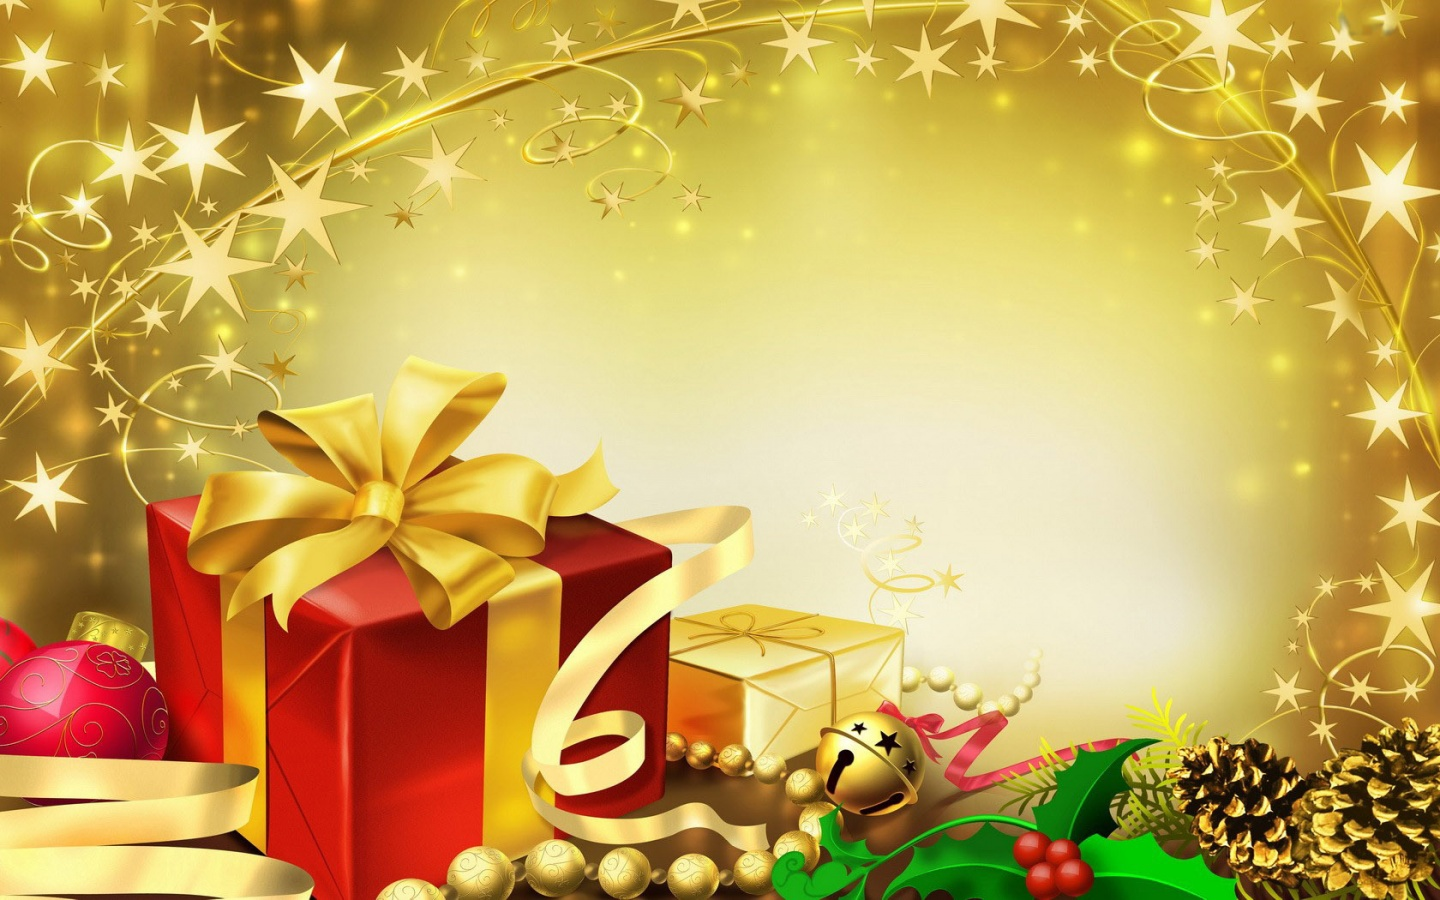 free_merry_christmas_wallpaper_download-1440x900